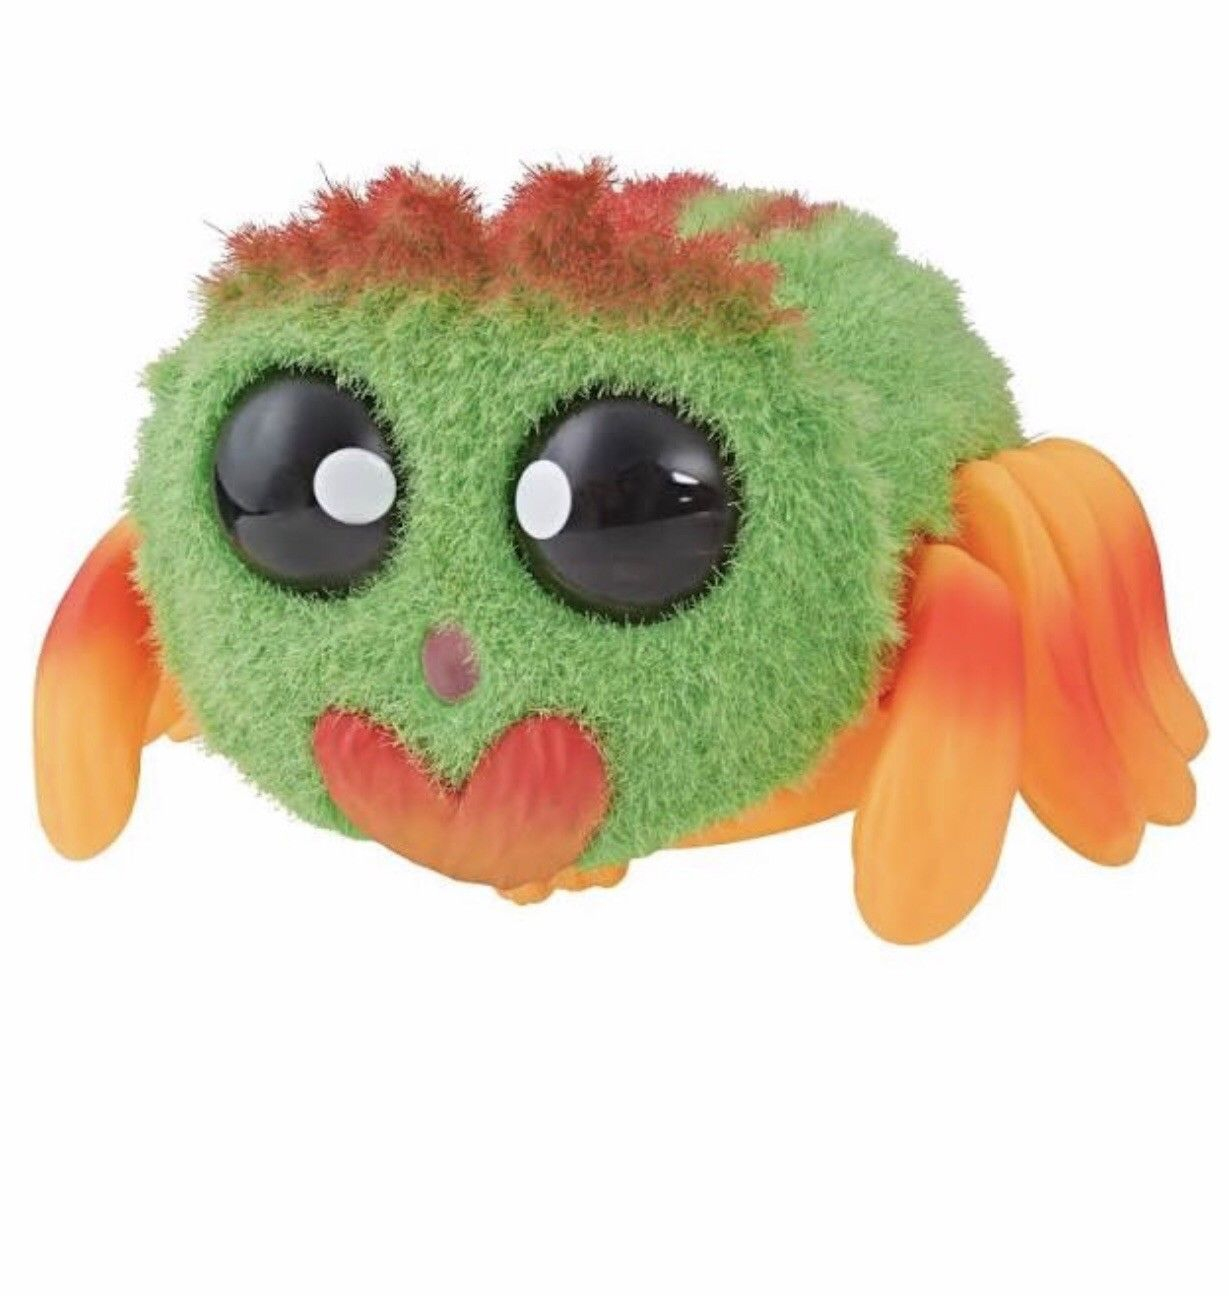 Yellies ++ Klutzers++ Green Voice-Activated Spider Pet NEW IN HAND HOT TOY 2018